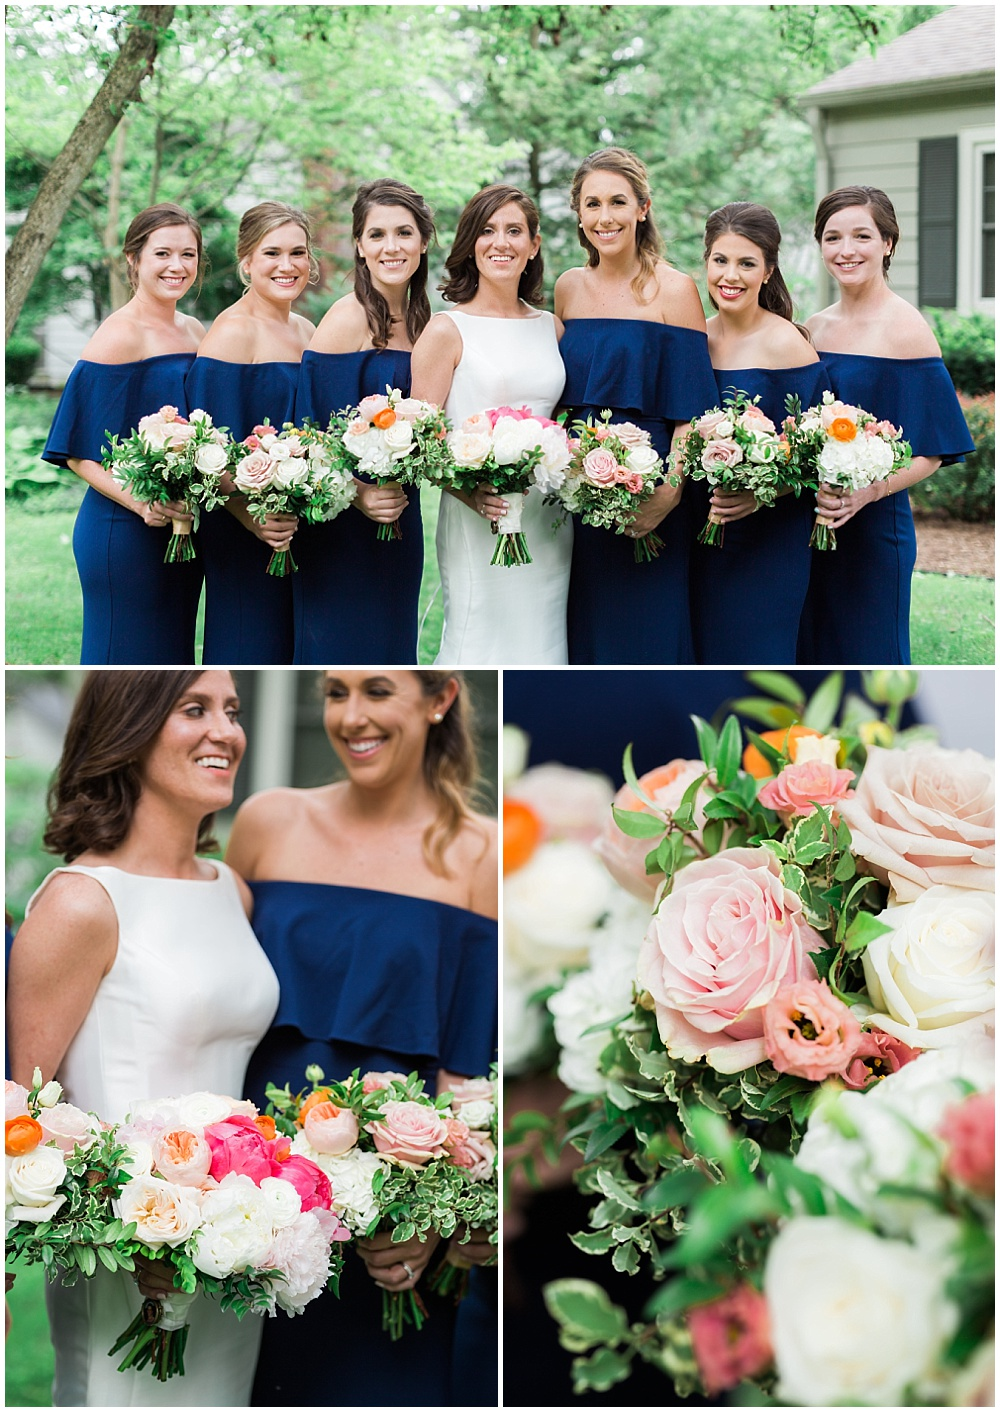 Bridal party portraits with navy off-the-shoulder bridesmaid dresses and cape-cod inspired bridal bouquets. | Coral and navy Cape Cod-inspired downtown Indianapolis library wedding with Gaby Cheikh Photography and Jessica Dum Wedding Coordination